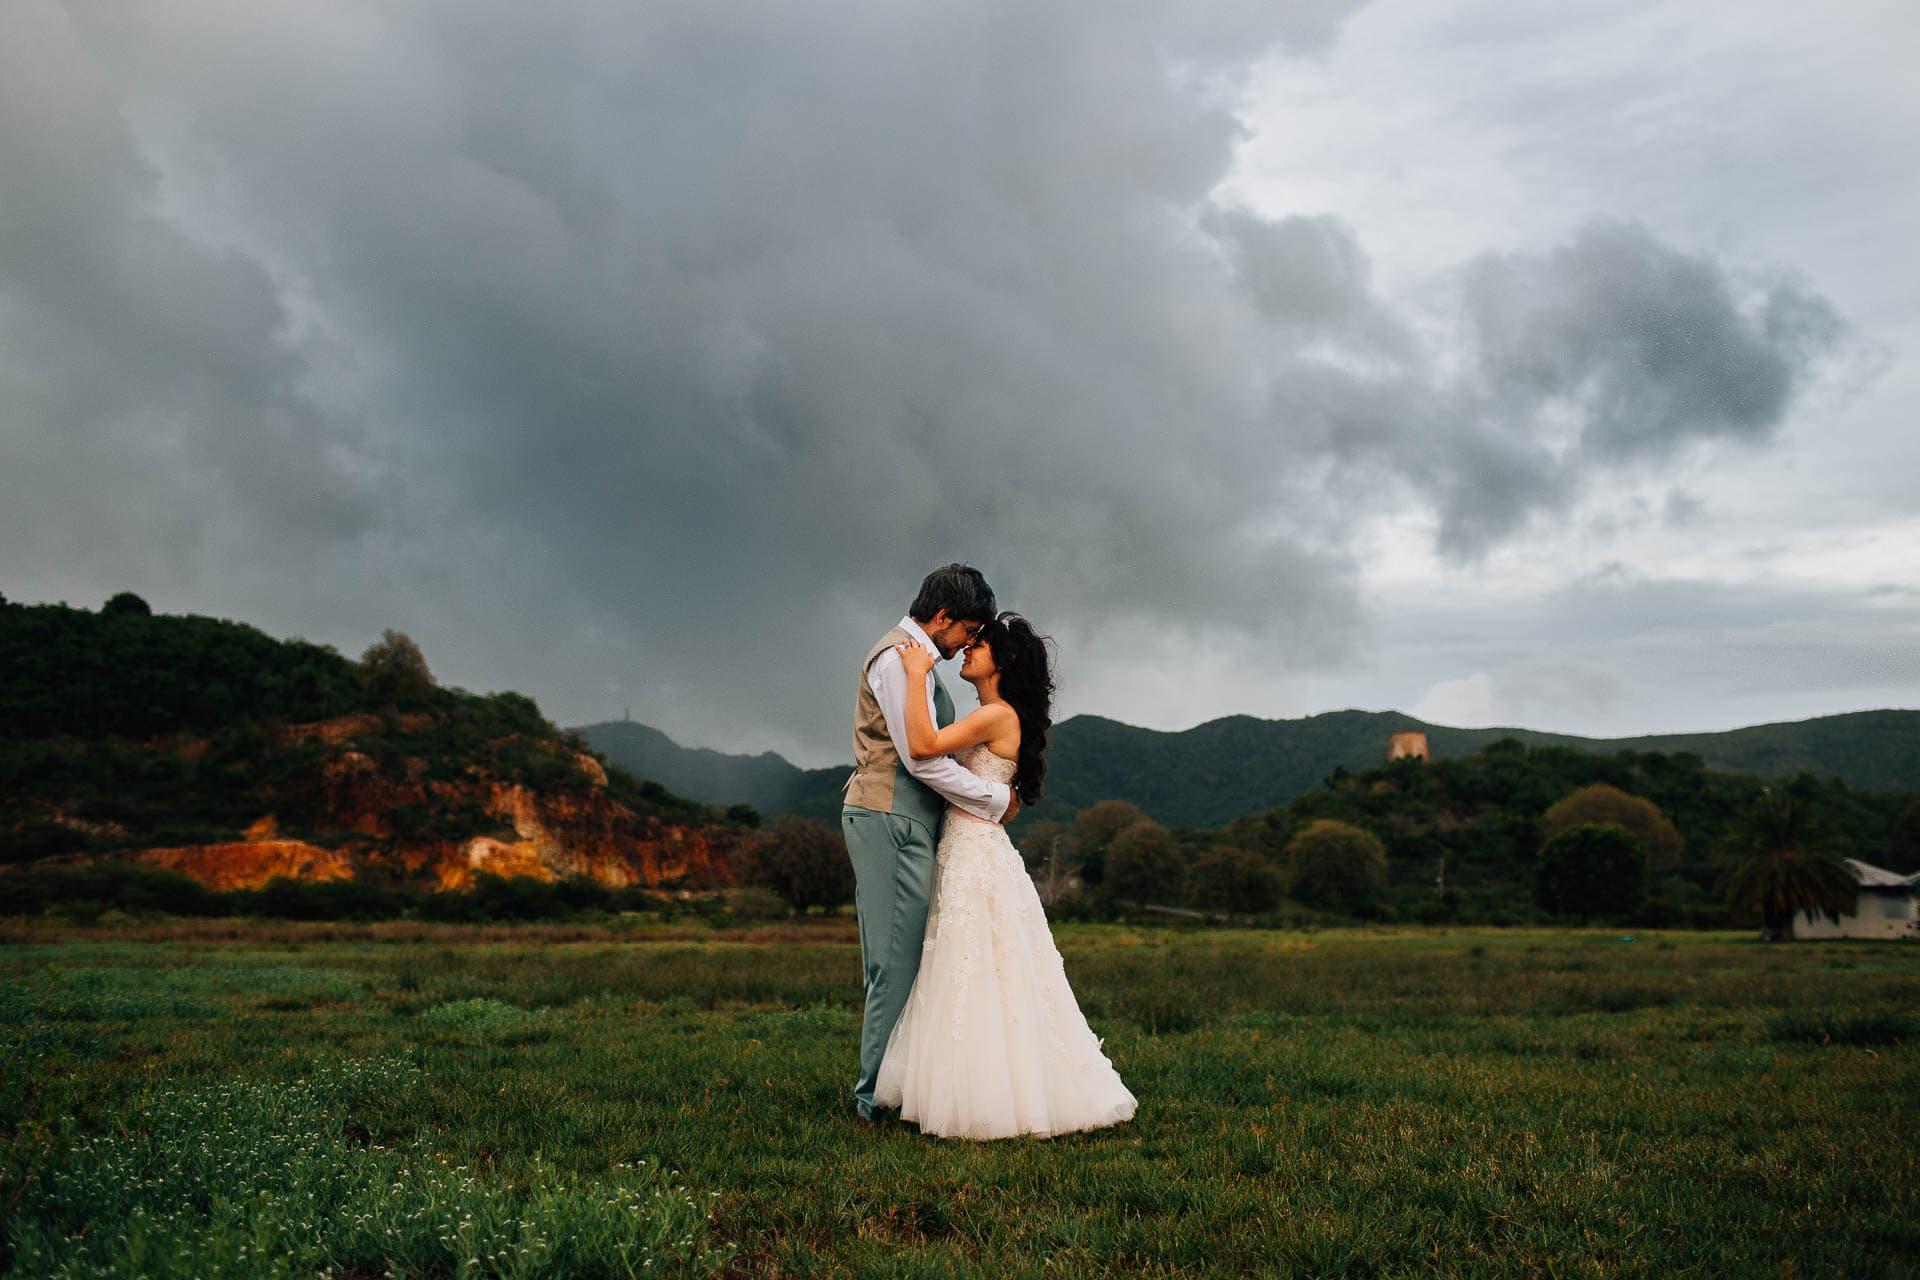 Antigua Destination Wedding Photography - Roxie & Mark - couple under moody sky and mountains